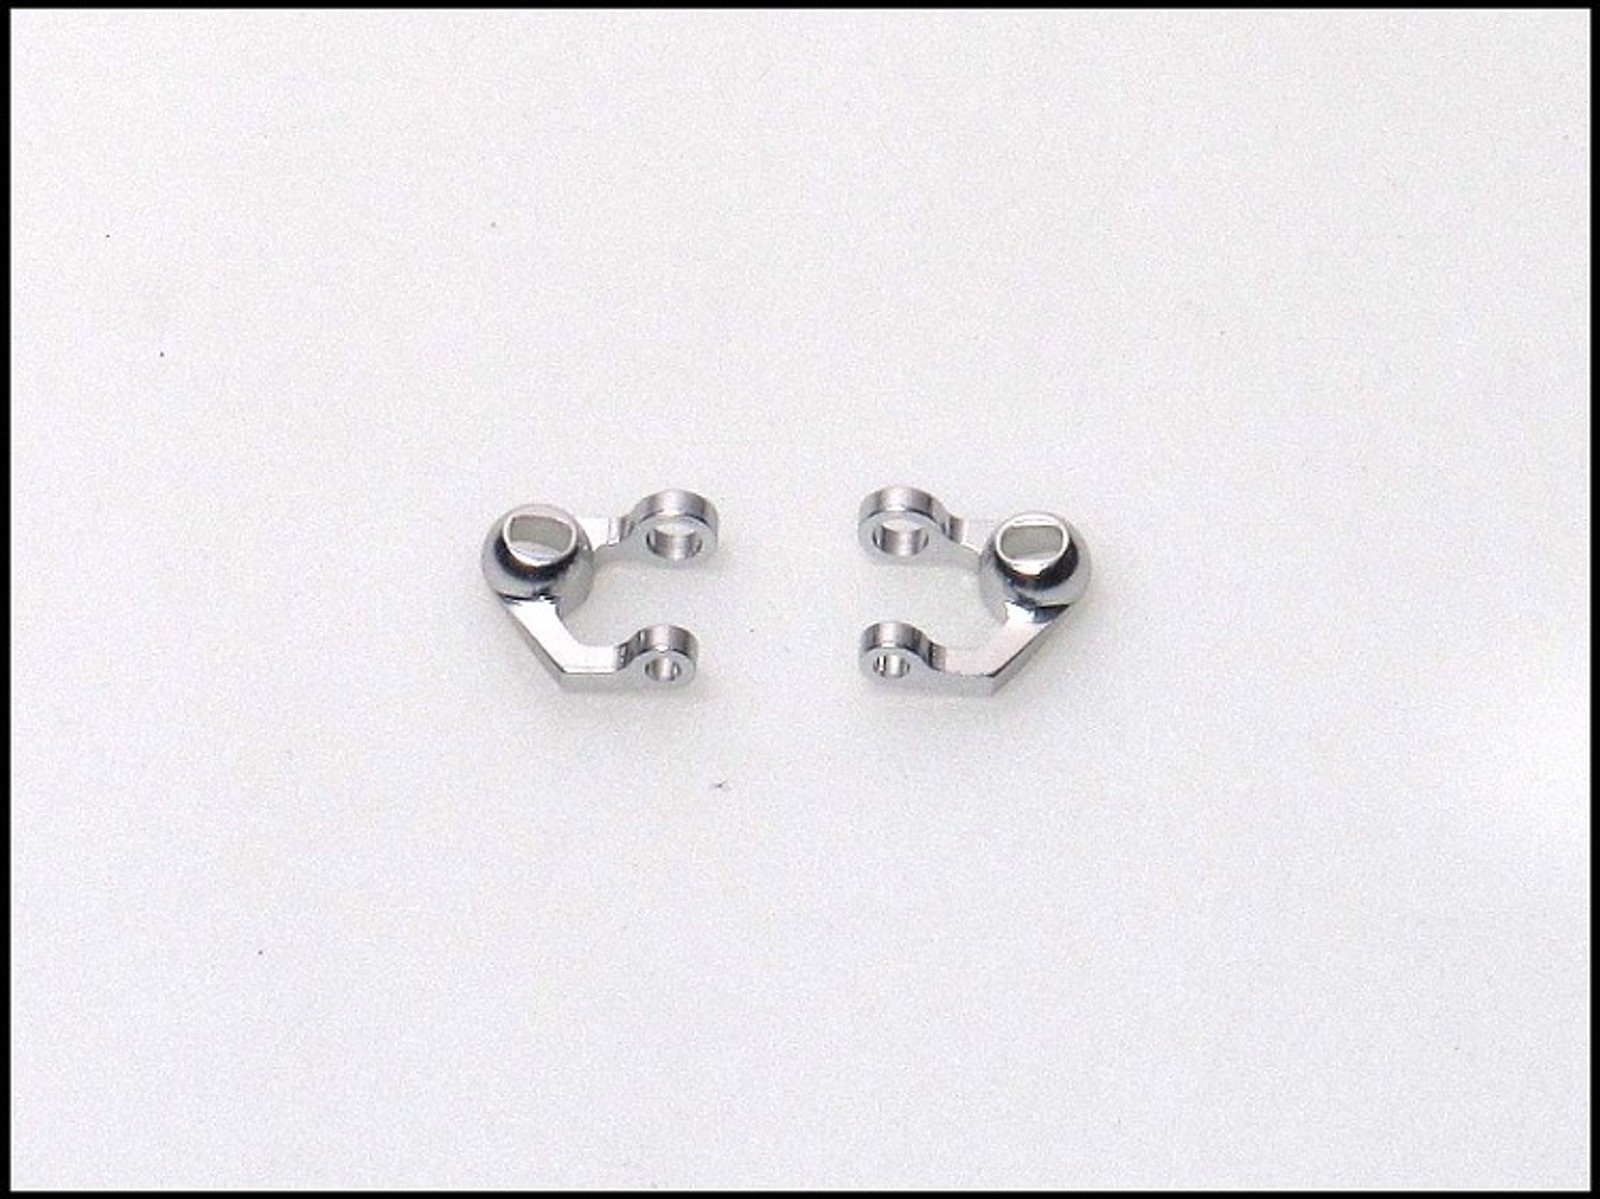 MR3050US / PN / MR02 & MR03 / Double A-Arm Upper Arm Set (SILBER) - Obere Querle - Bild 1